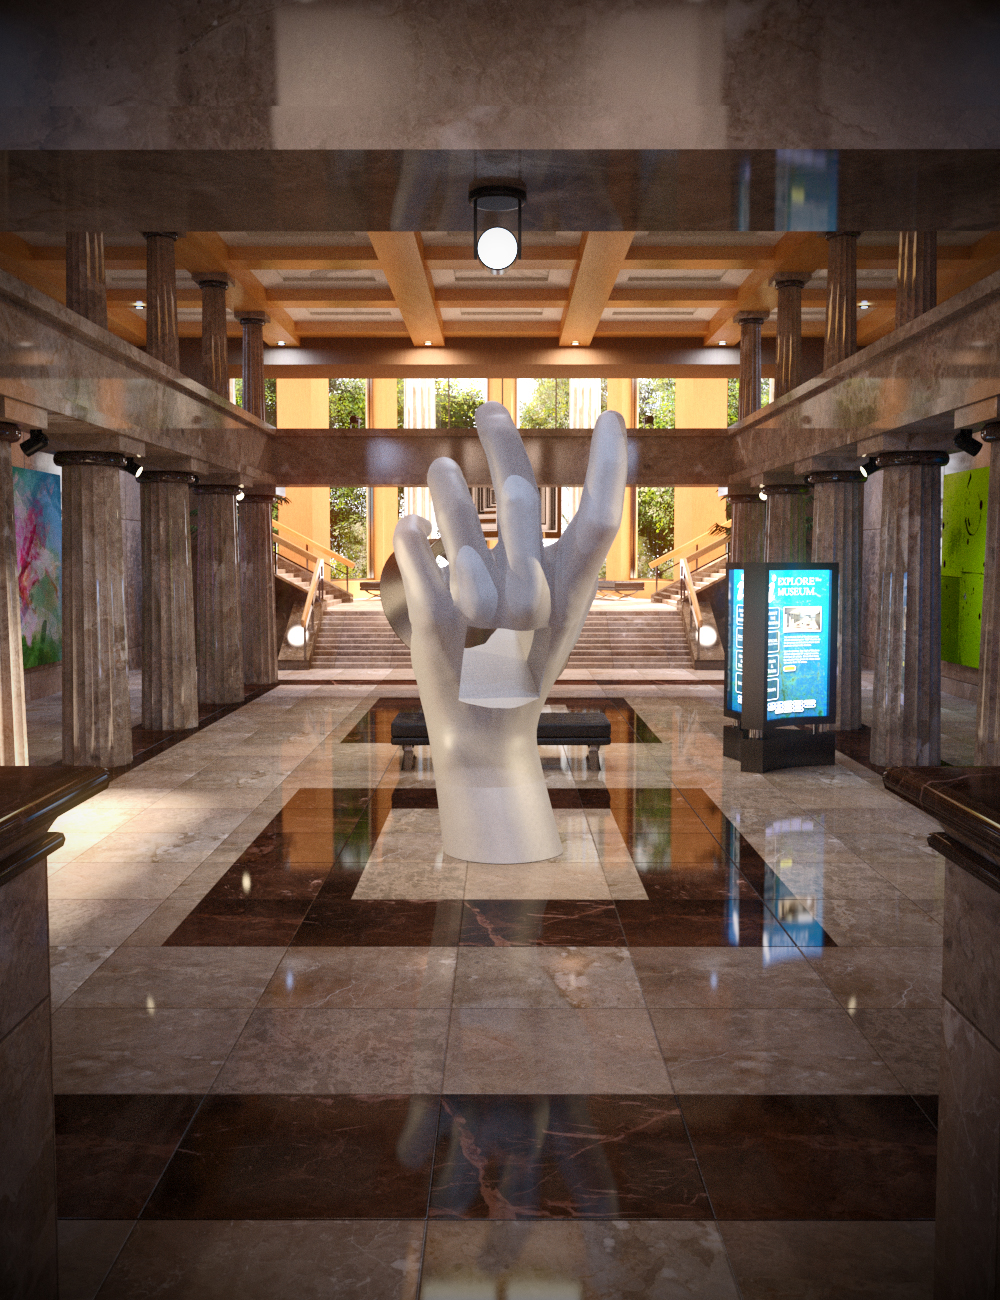 Modern Museum by: DimensionTheory, 3D Models by Daz 3D